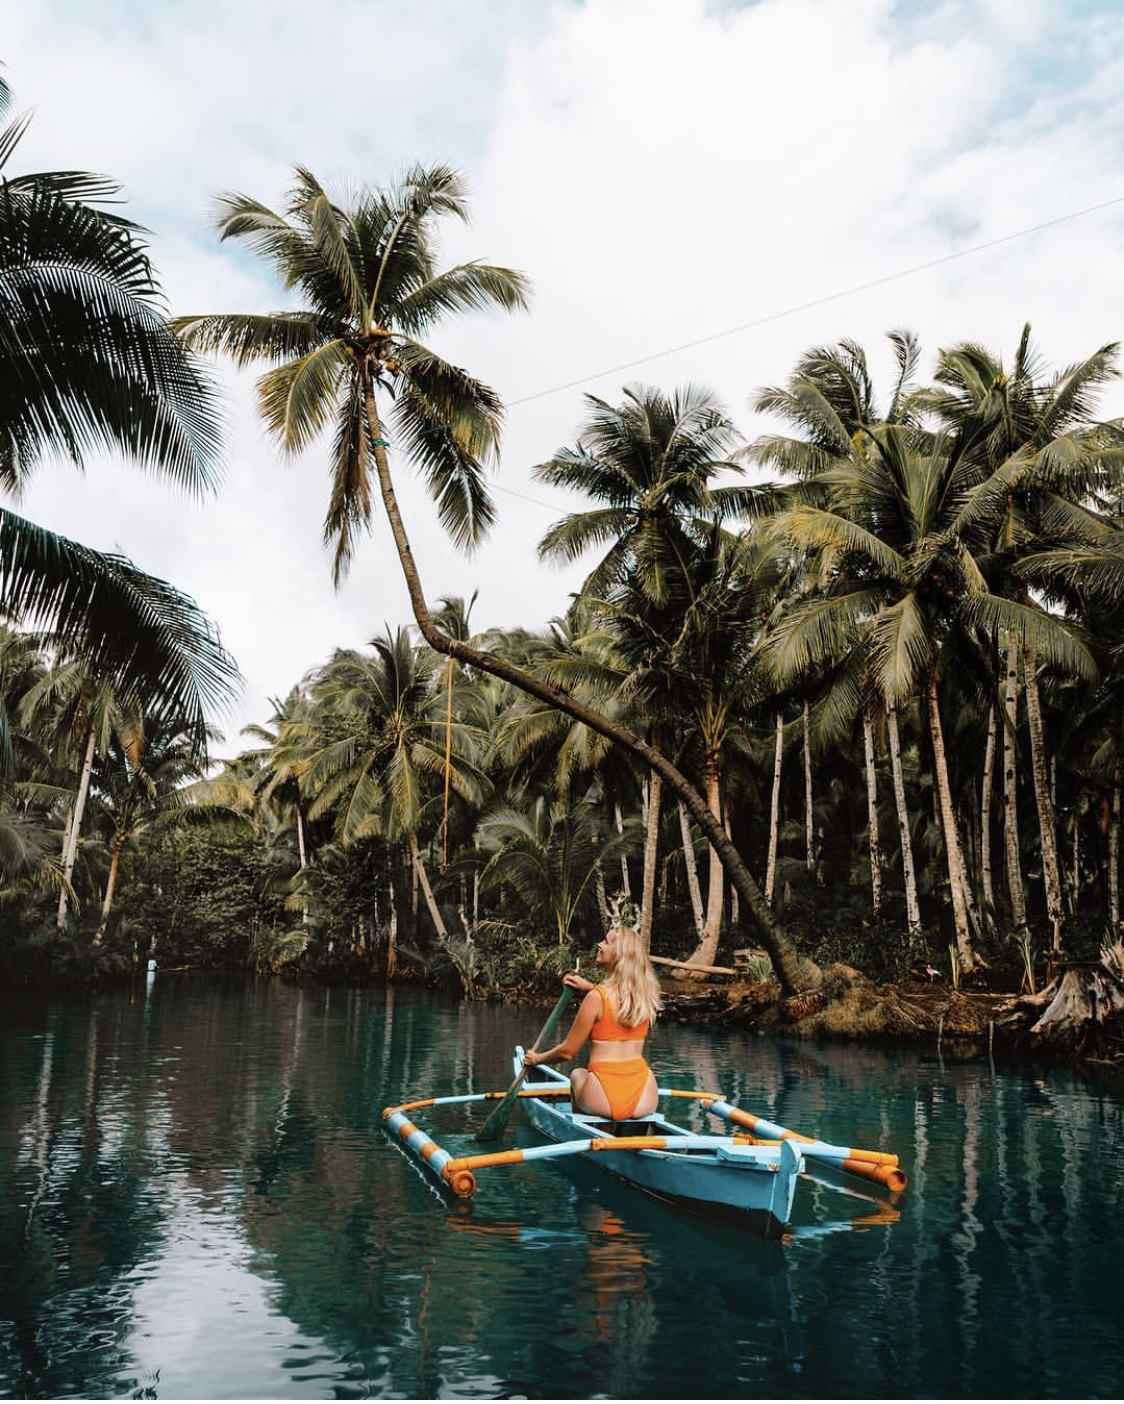 Top 5 Travel Influencers That Give You Serious #Wanderlust